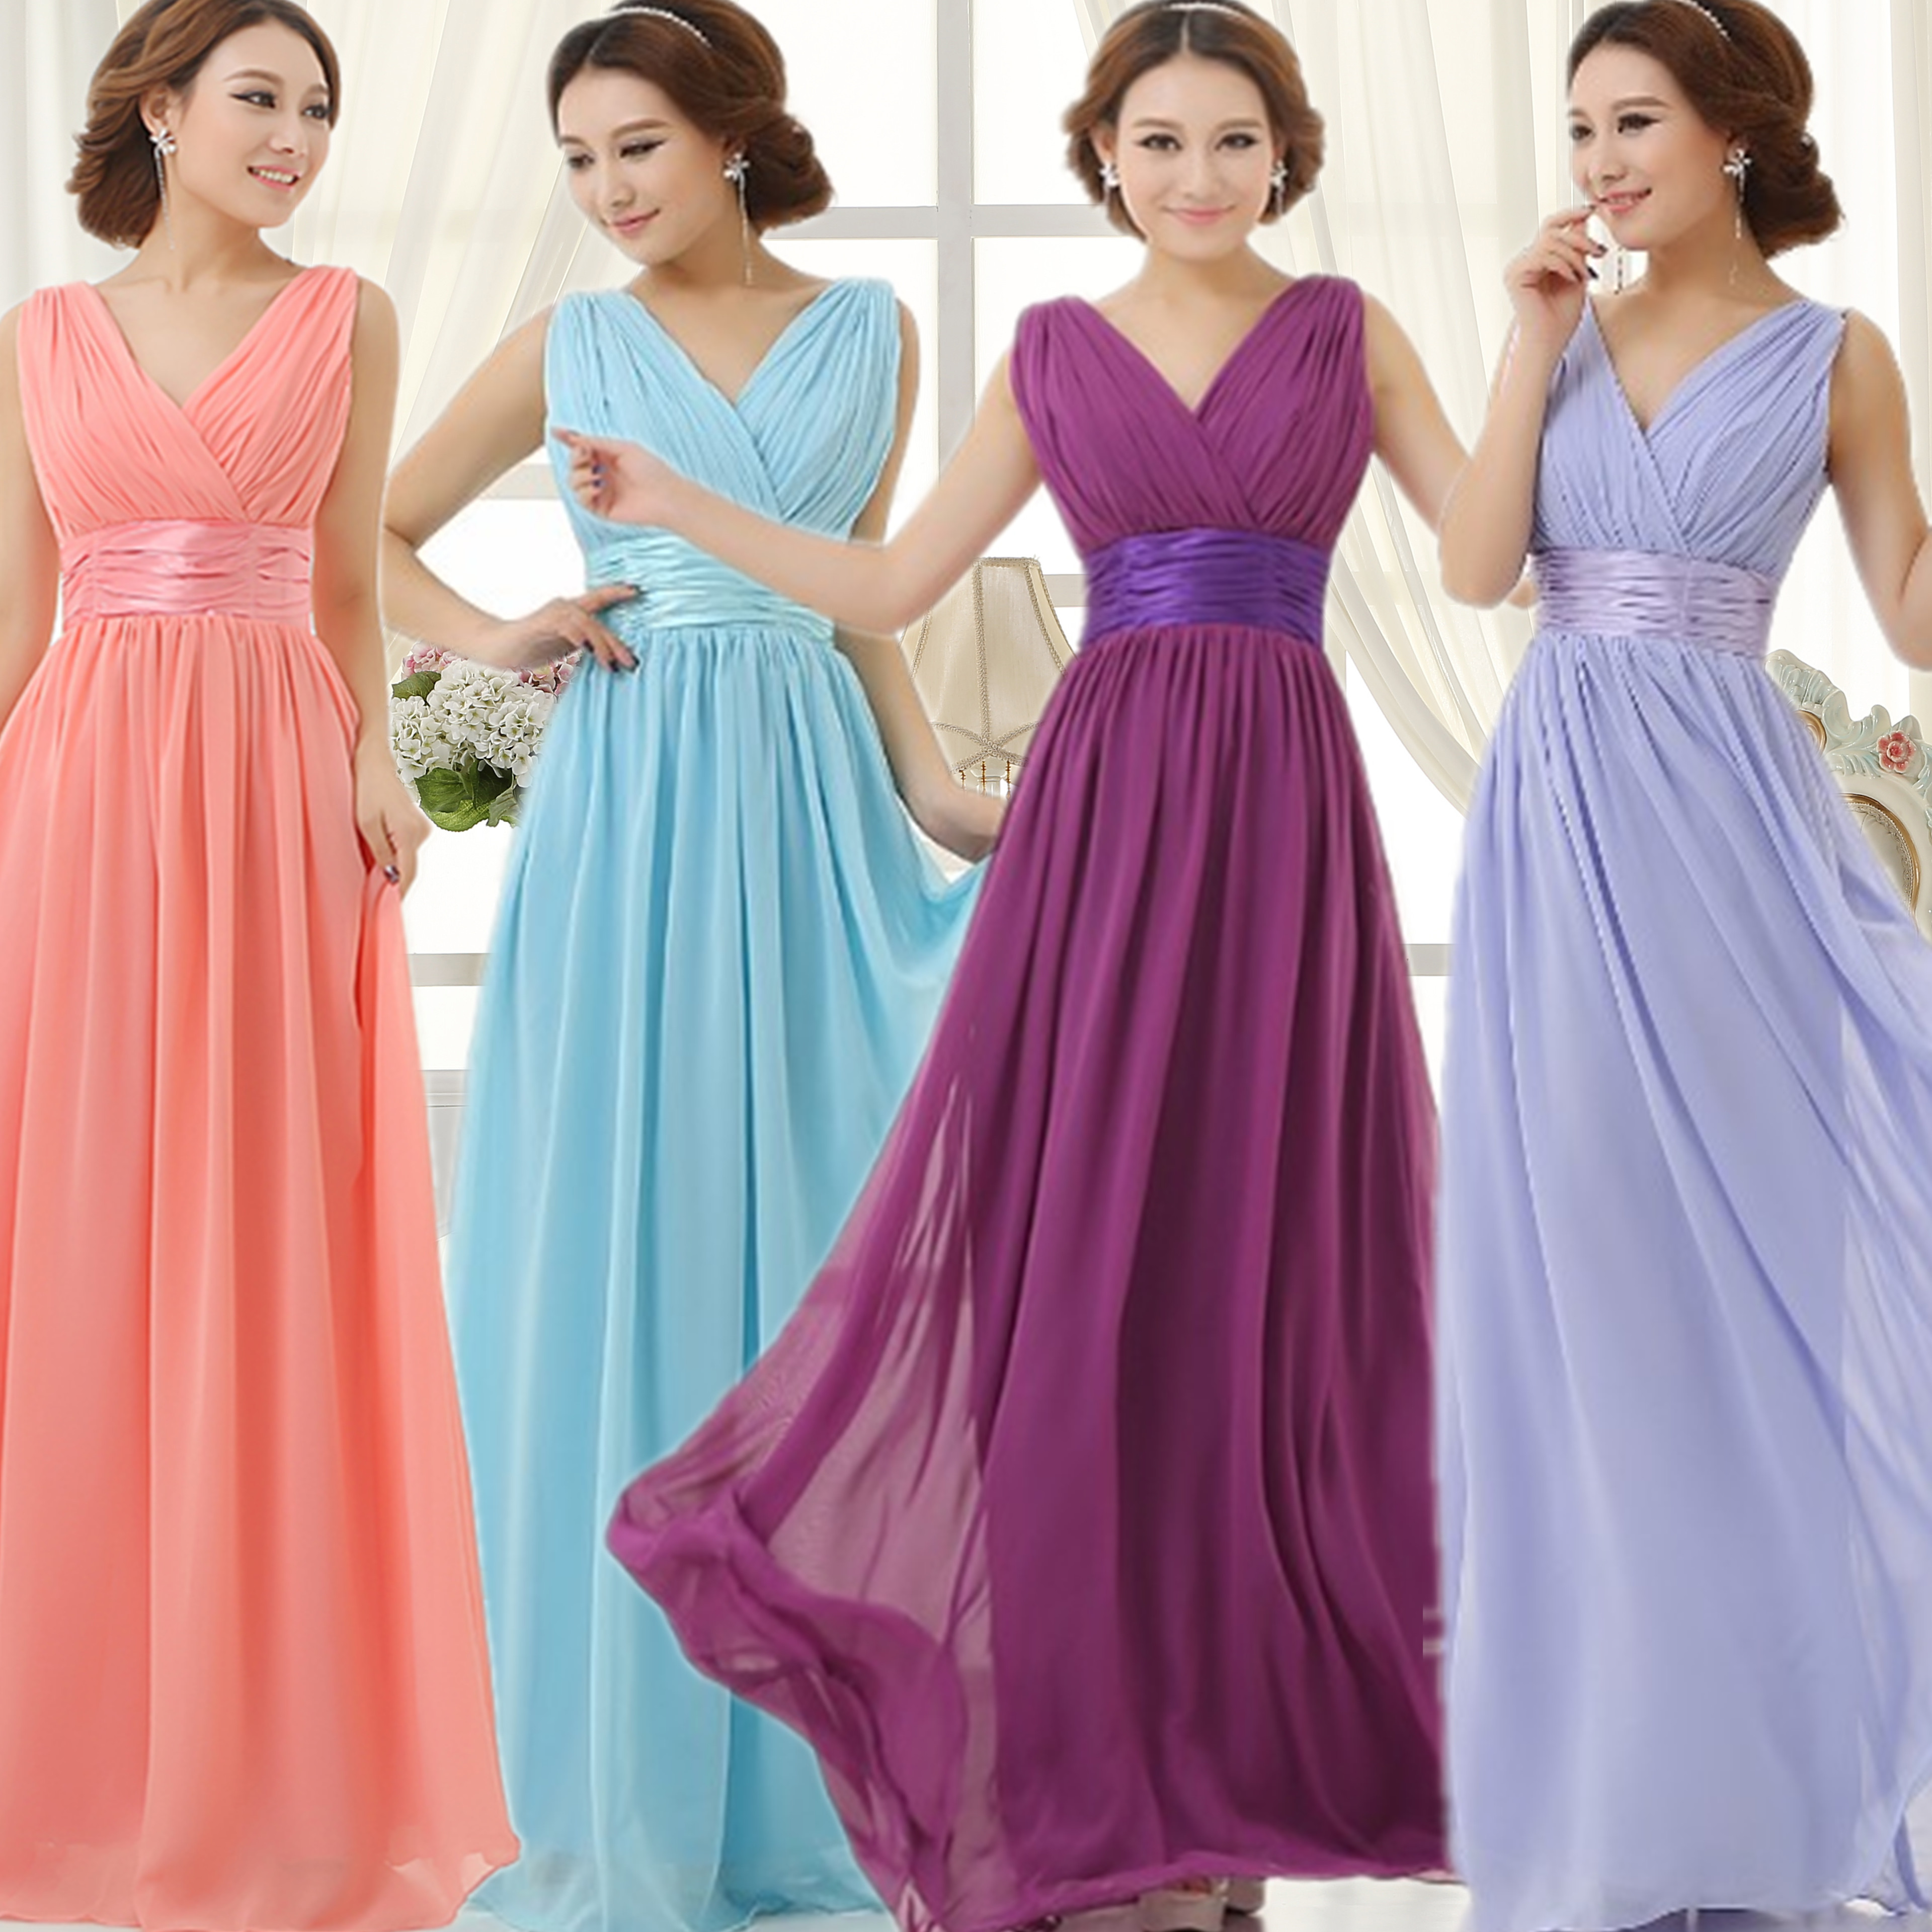 Royal Blue And Purple Wedding Party Year Of Clean Water